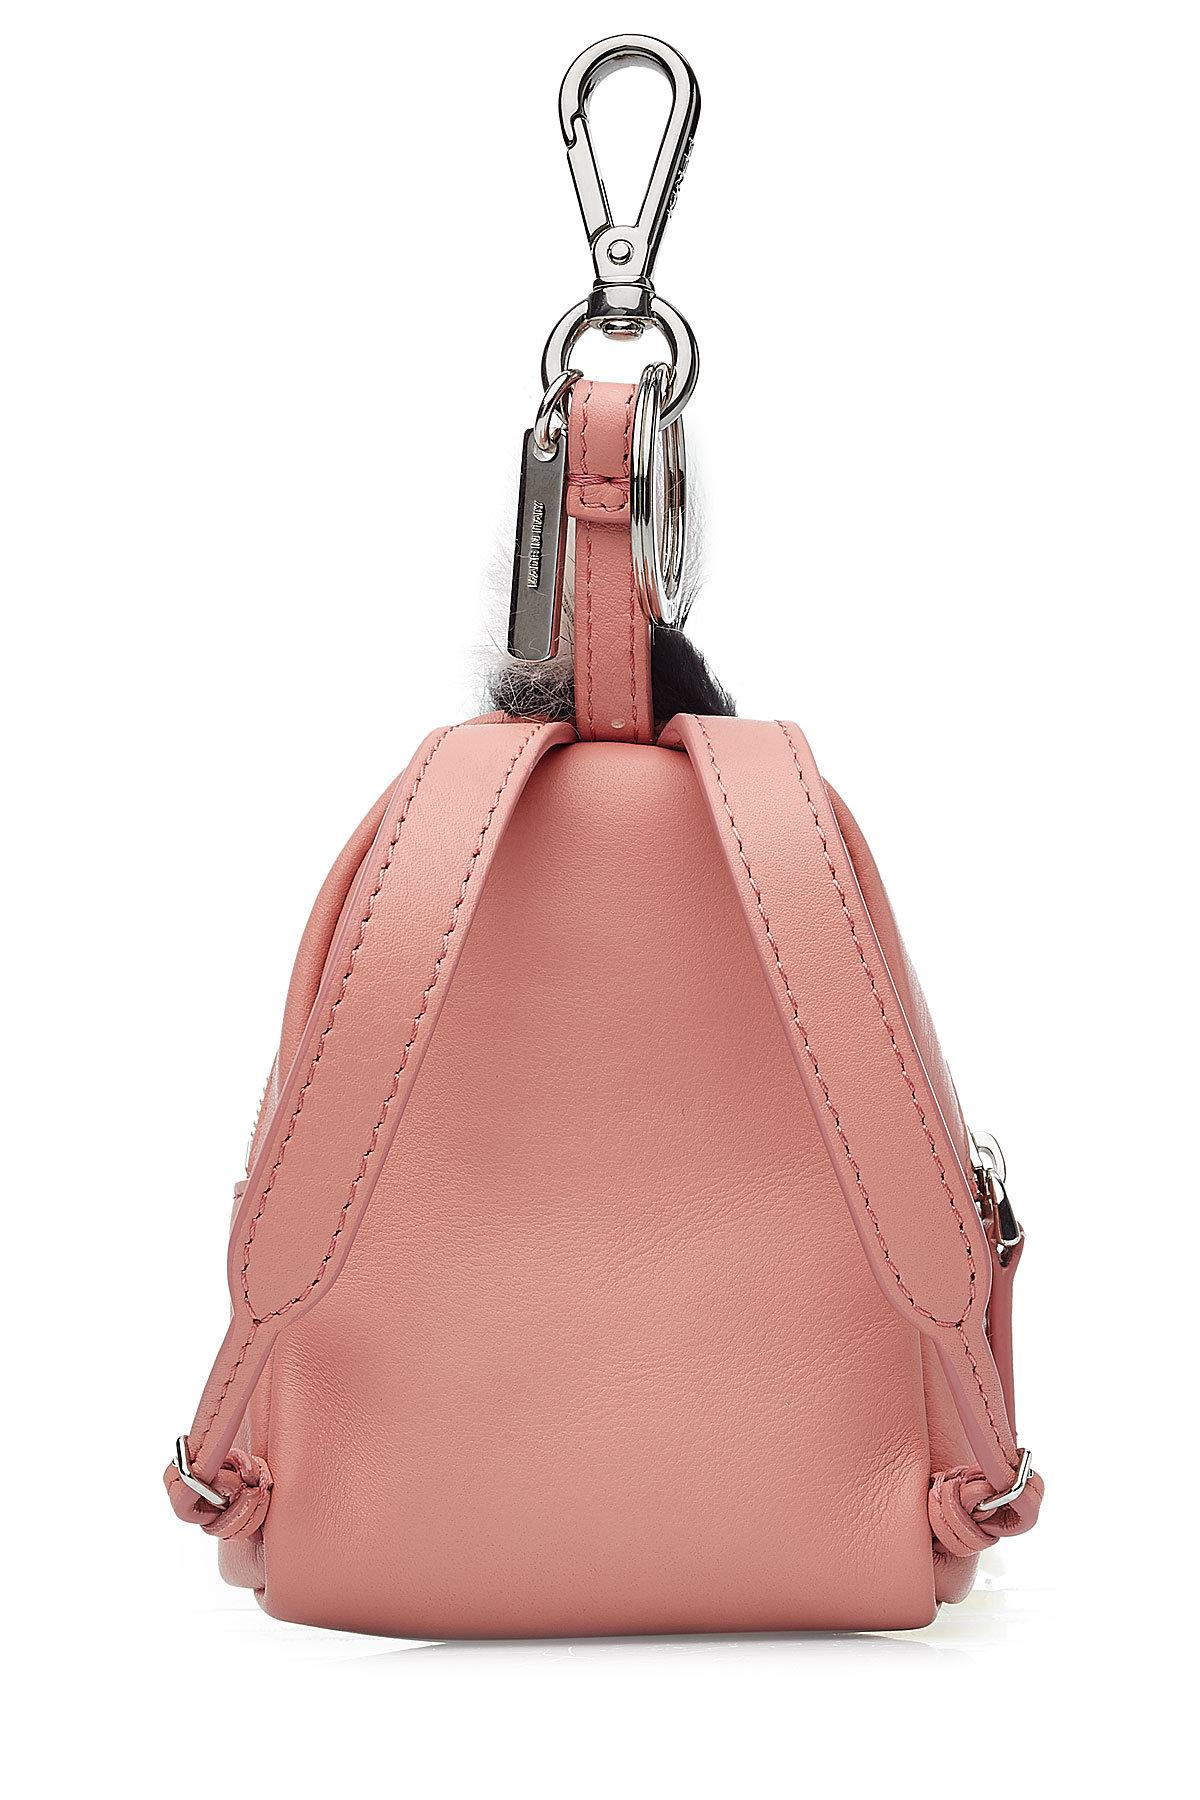 cddfa913a118 Fendi - Multicolor Leather Backpack Charm With Fox Fur - Lyst. View  fullscreen